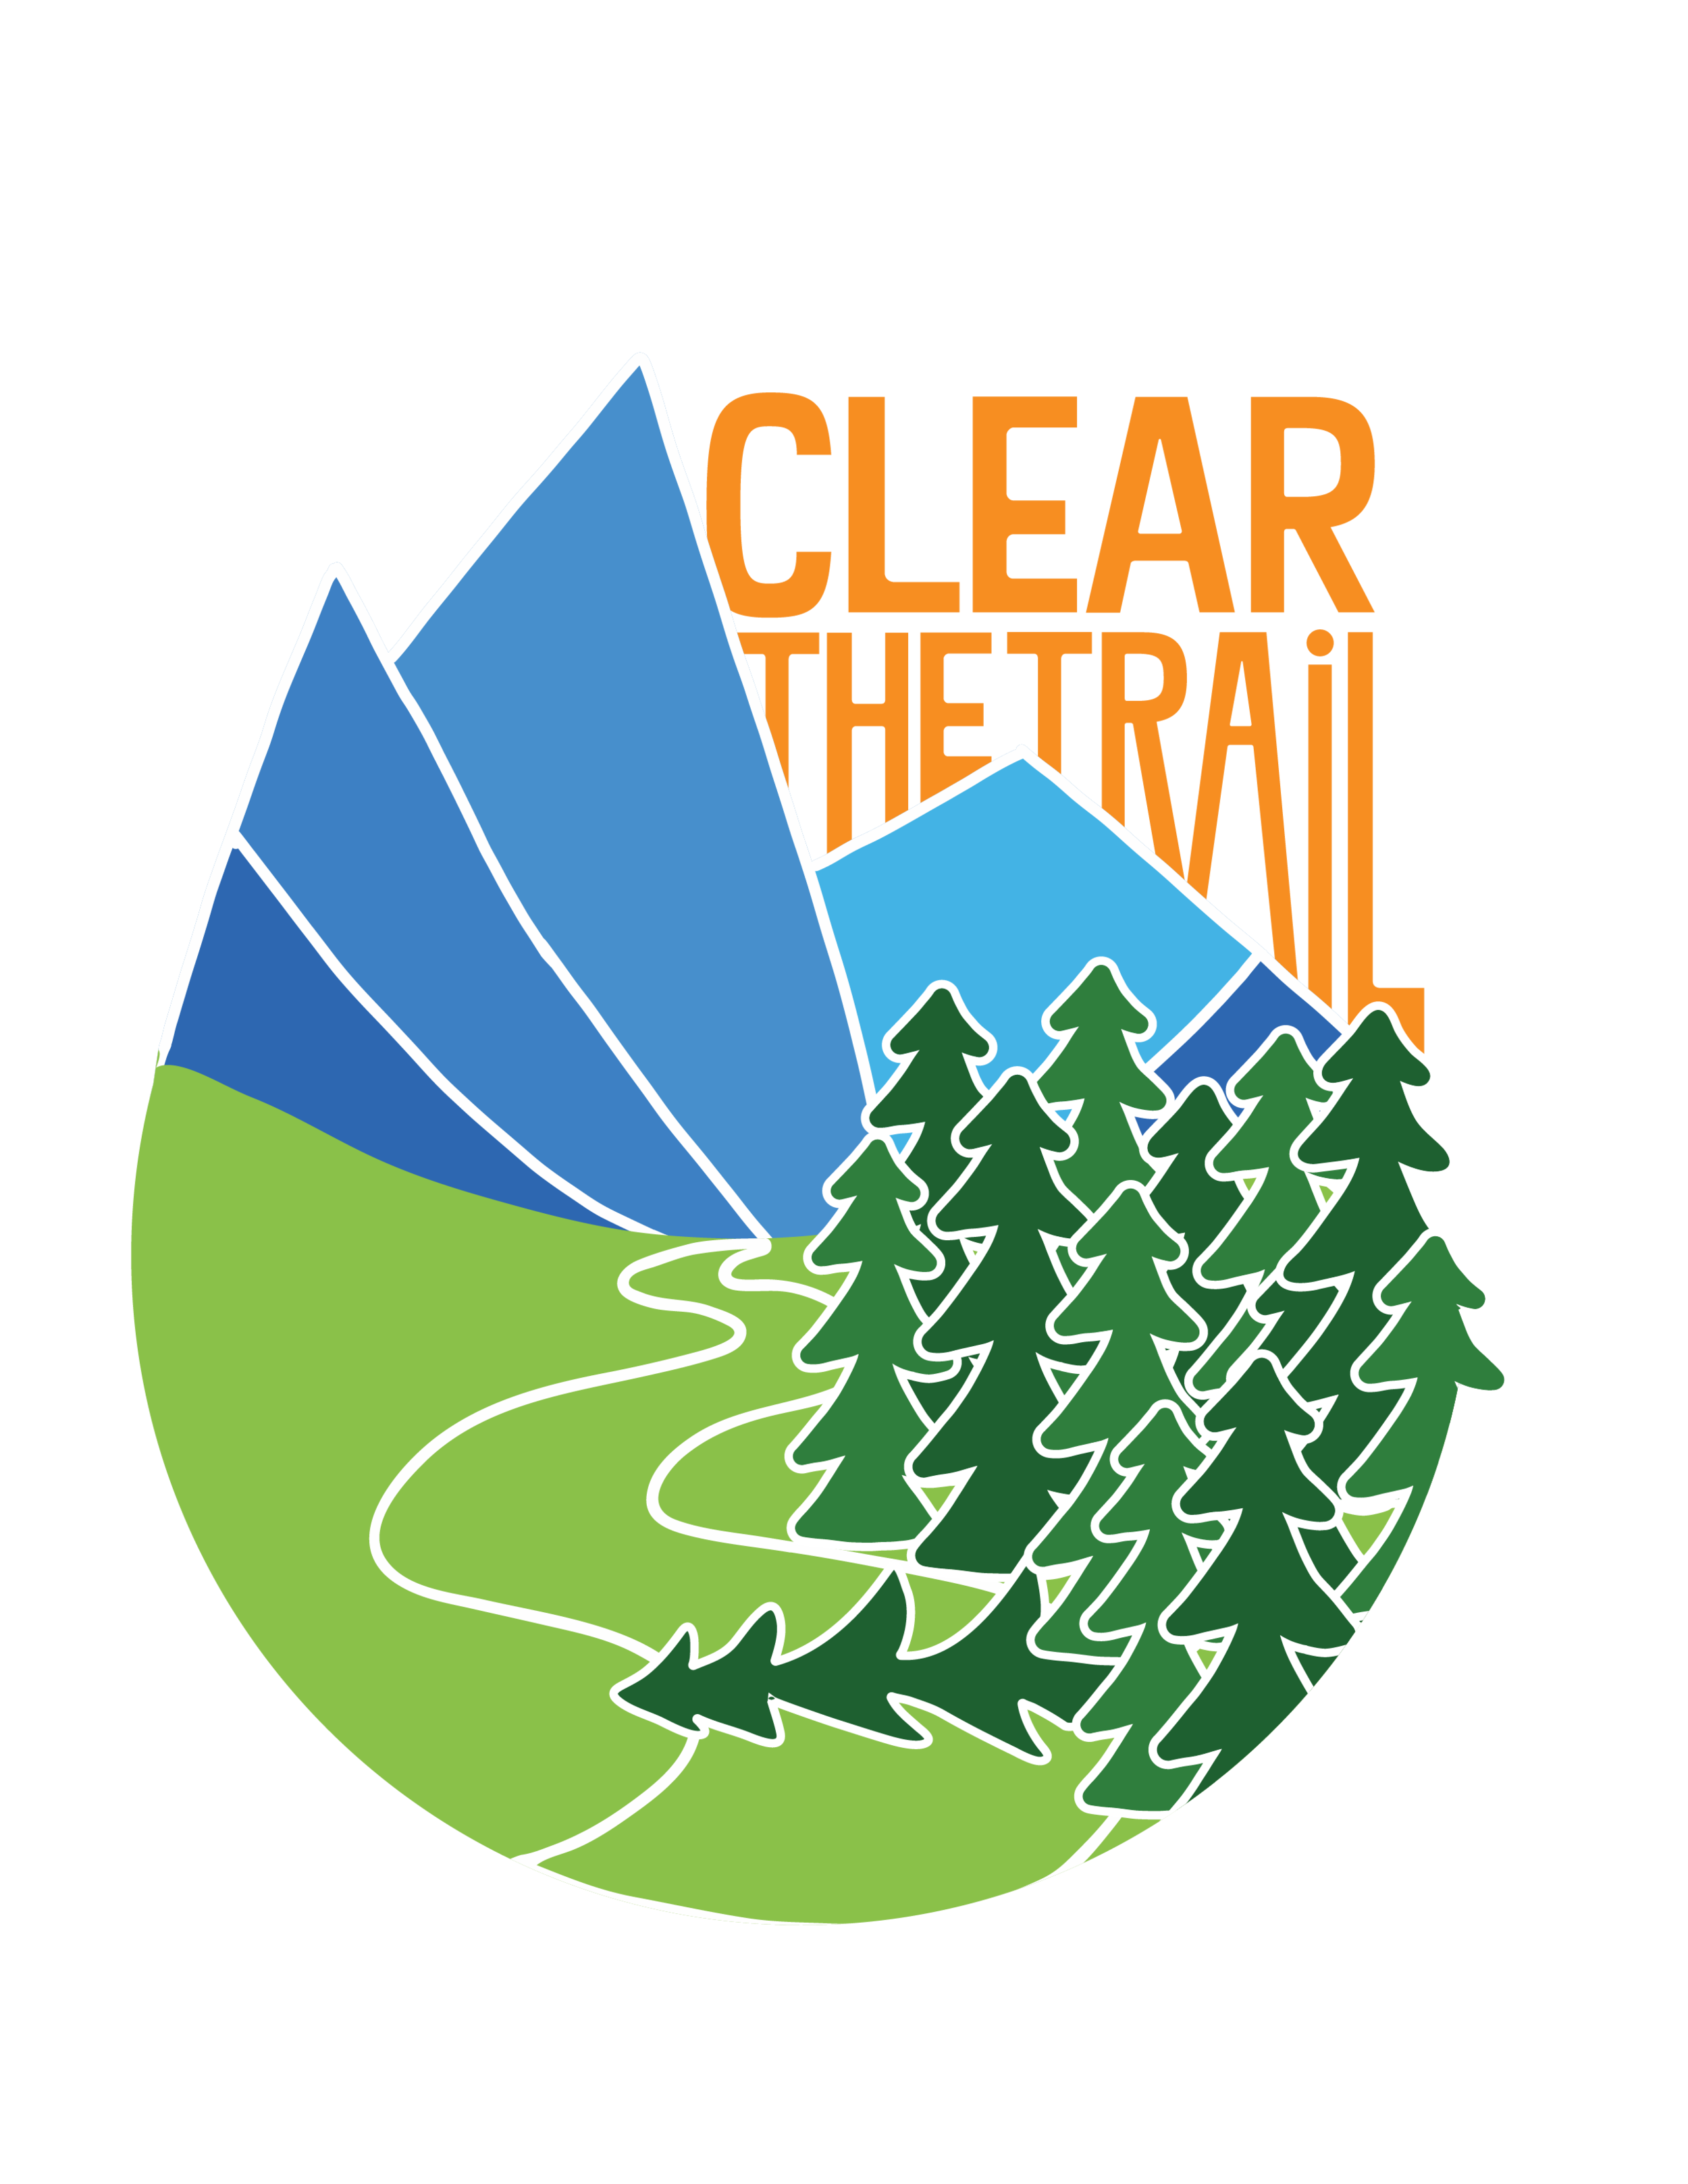 ClearTheTrail-01.png